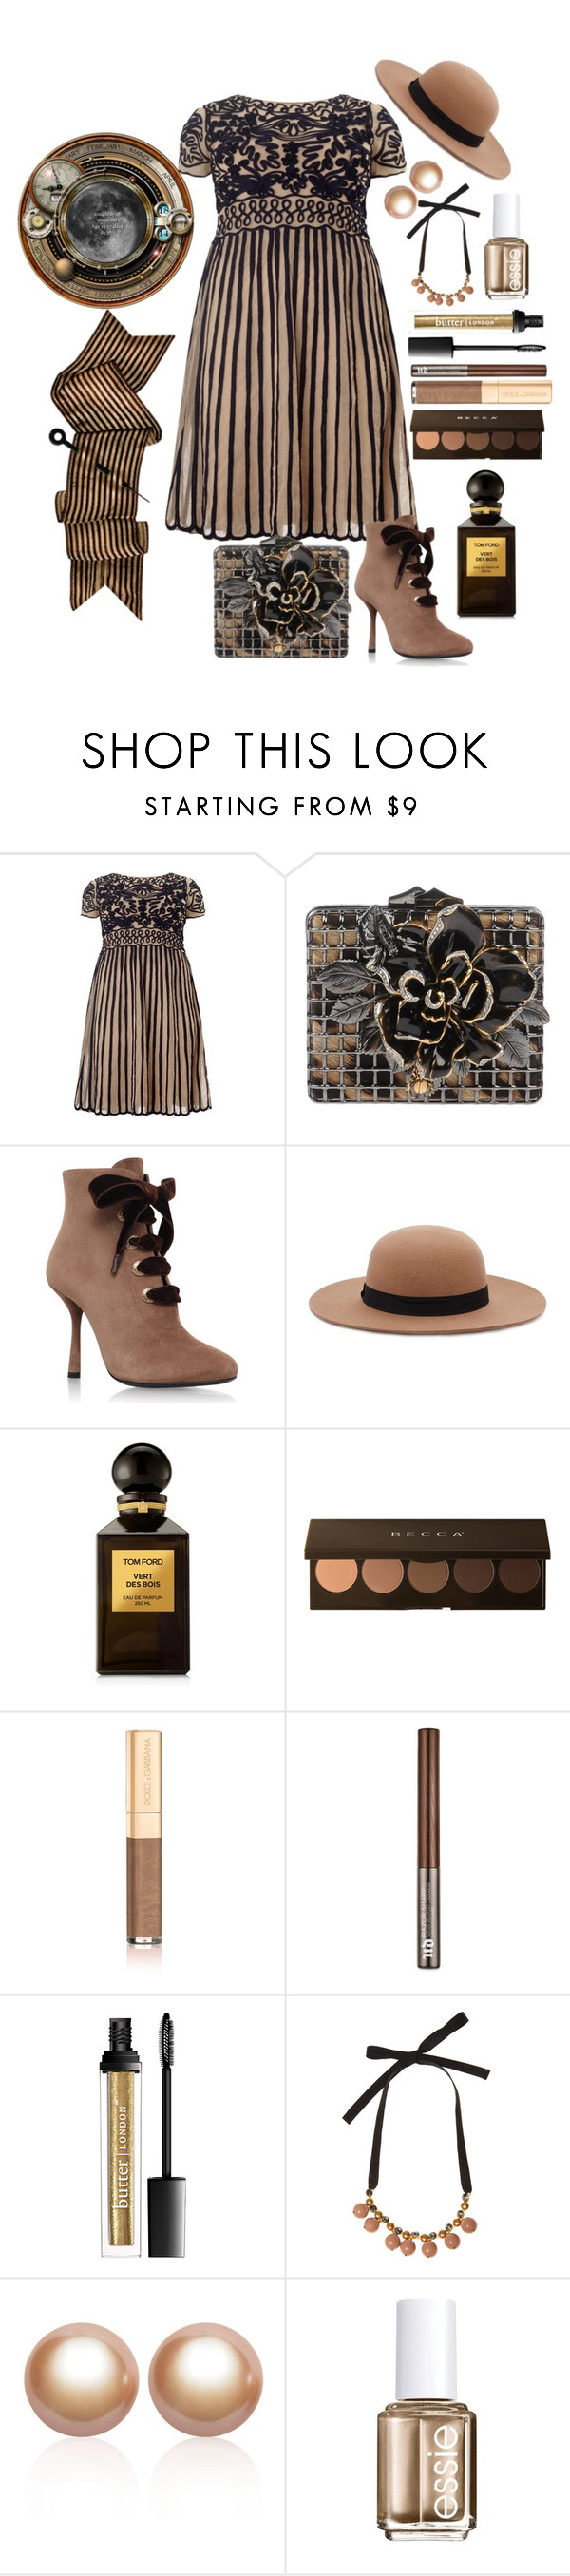 """""""My Vintage Style"""" by loves-elephants ❤ liked on Polyvore featuring Studio 8, Roberto Cavalli, Lanvin, Forever 21, Tom Ford, Becca, Dolce&Gabbana, Urban Decay, Marni and Amour de Pearl"""